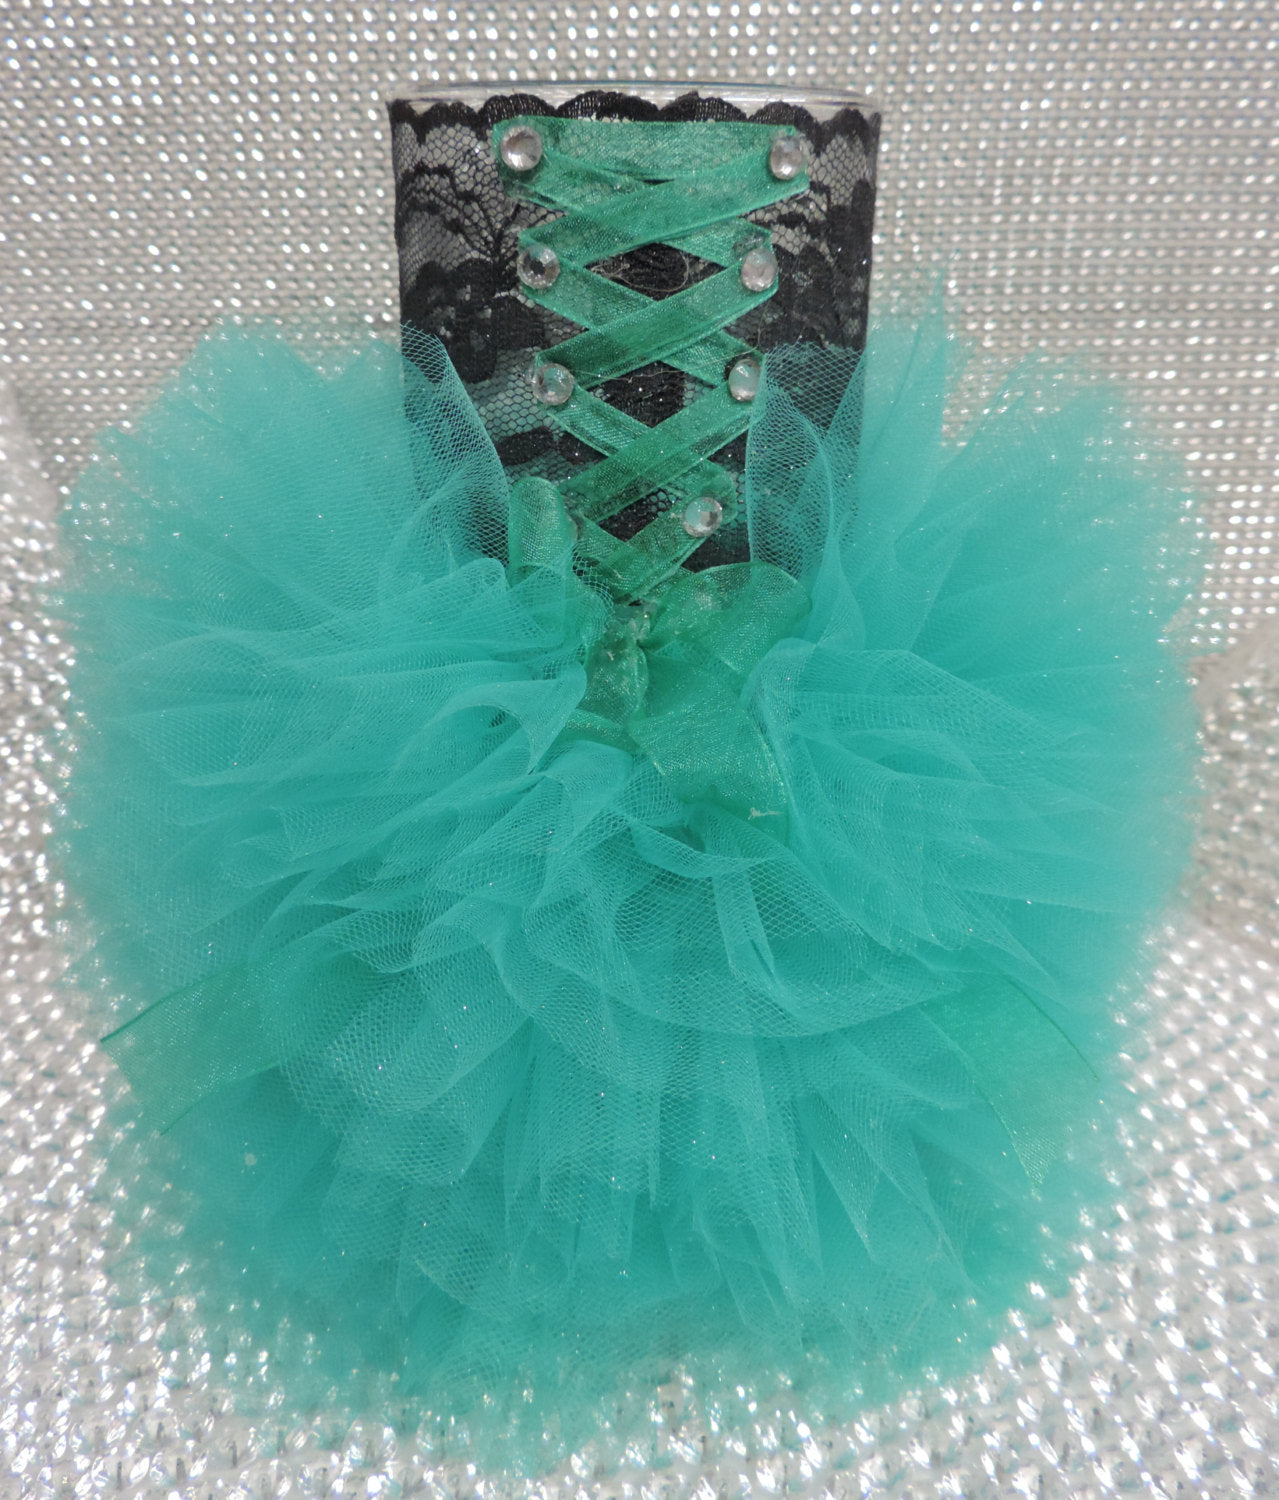 Black/Teal Corset Tutu Dress Cylinder Vase